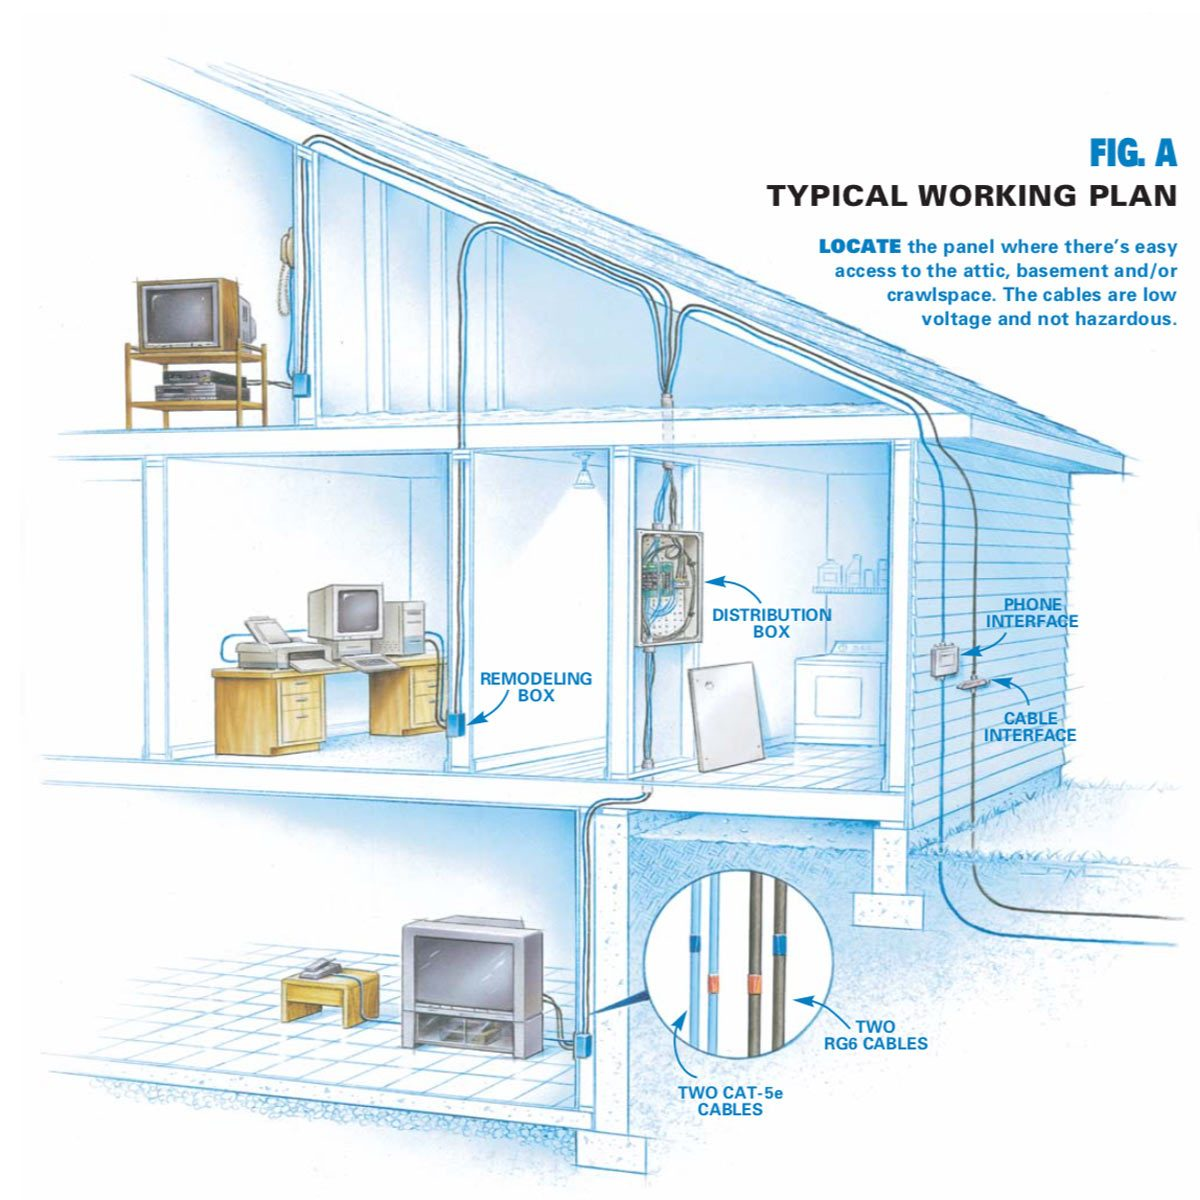 hight resolution of typical wiring plan locate the panel where there s easy access to the attic basement and or crawlspace the cables are low voltage and not hazardous